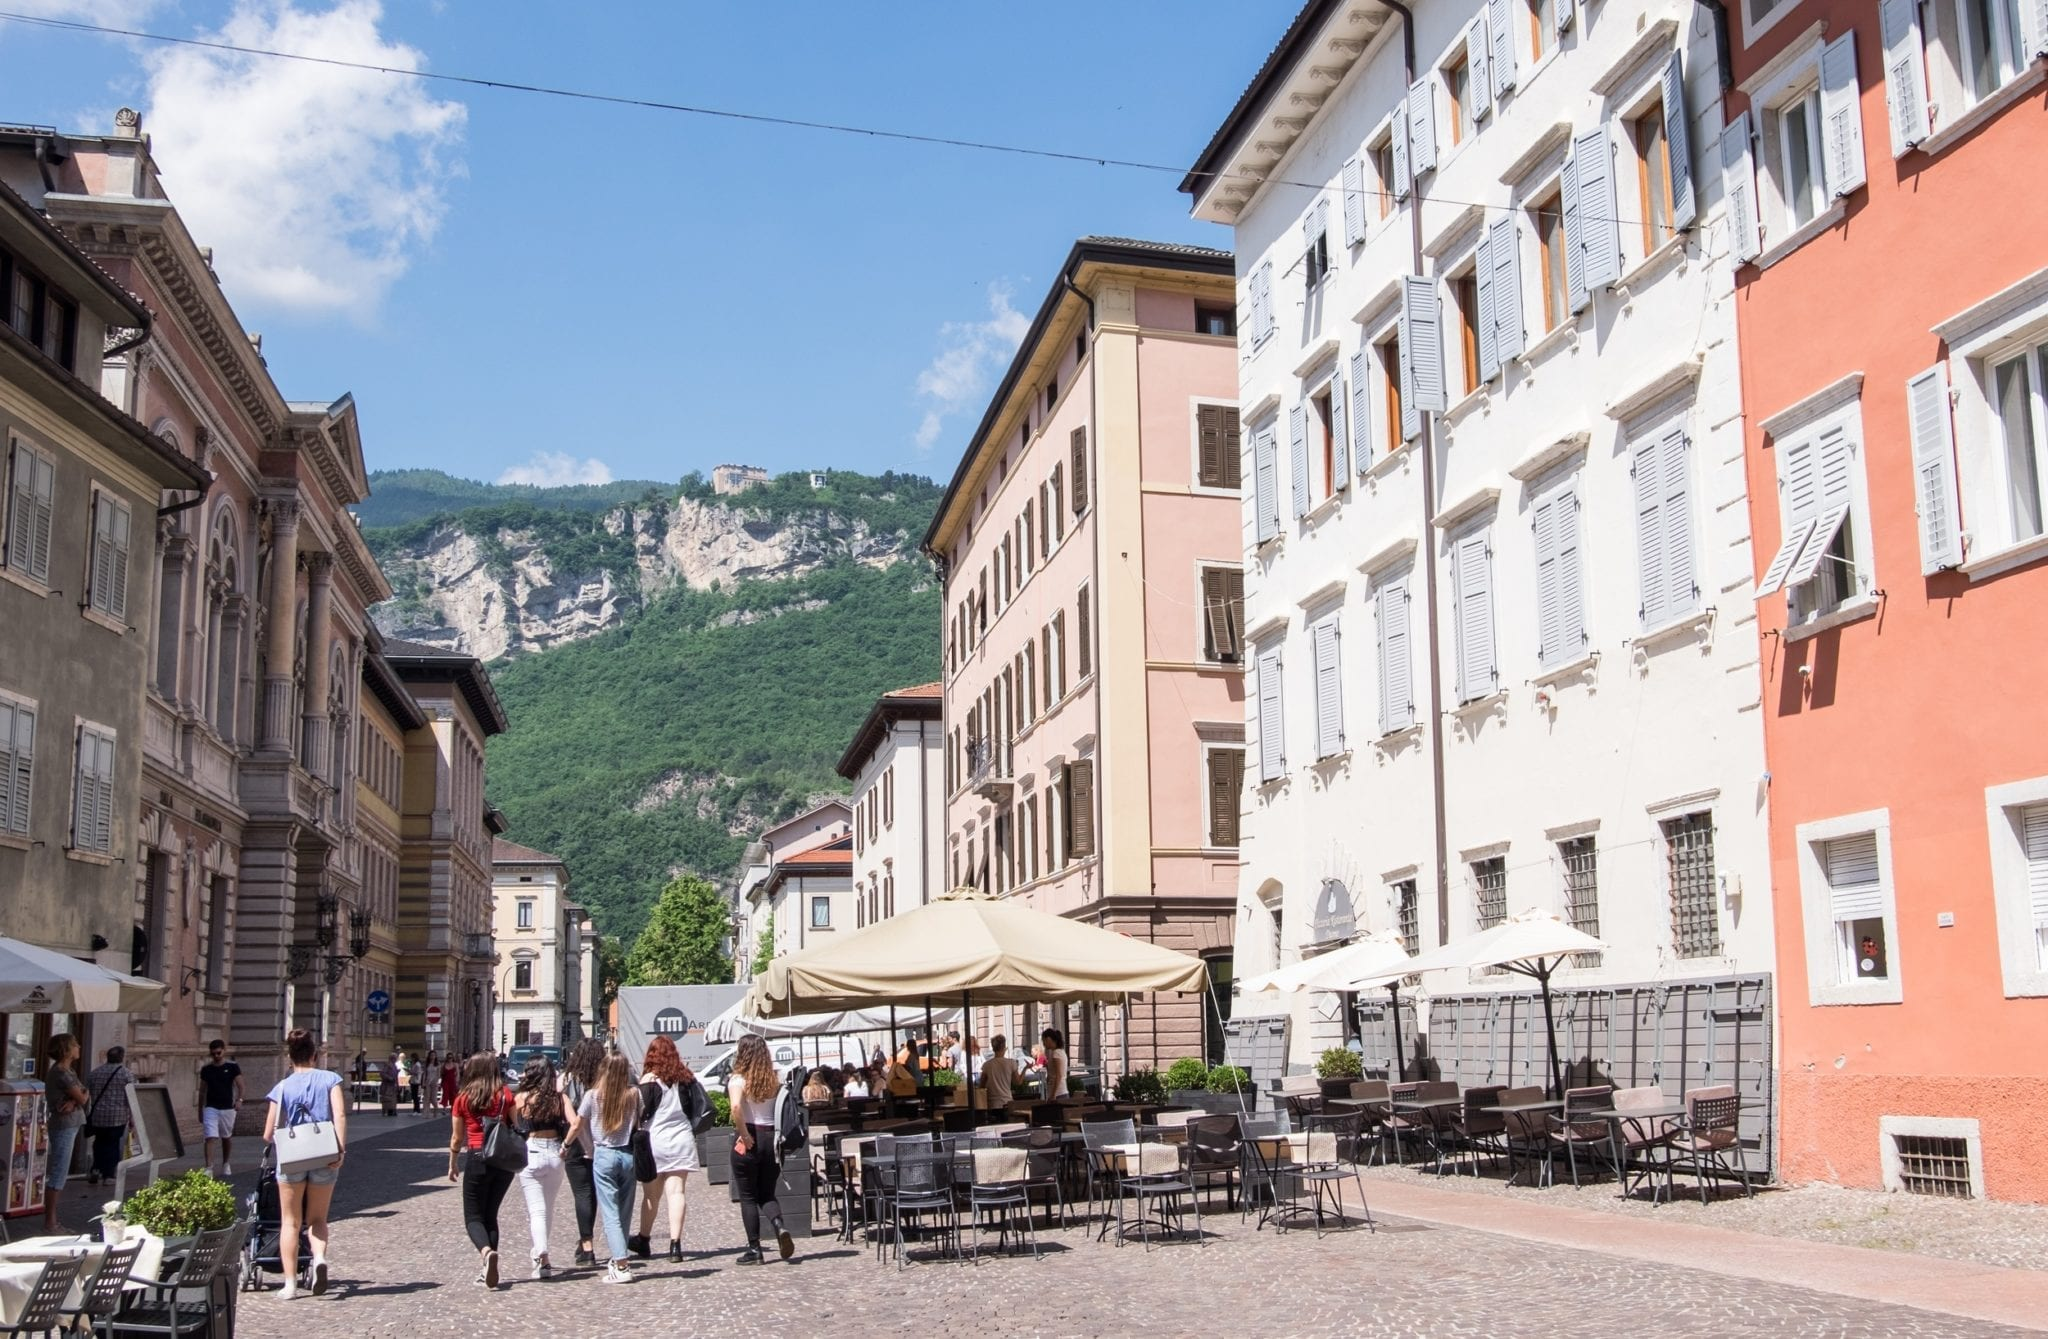 A piazza in Trento, Italy, gives way to green mountains in the background. The buildings are cream, white, and pale orange and a group of women walks together in the foreground.